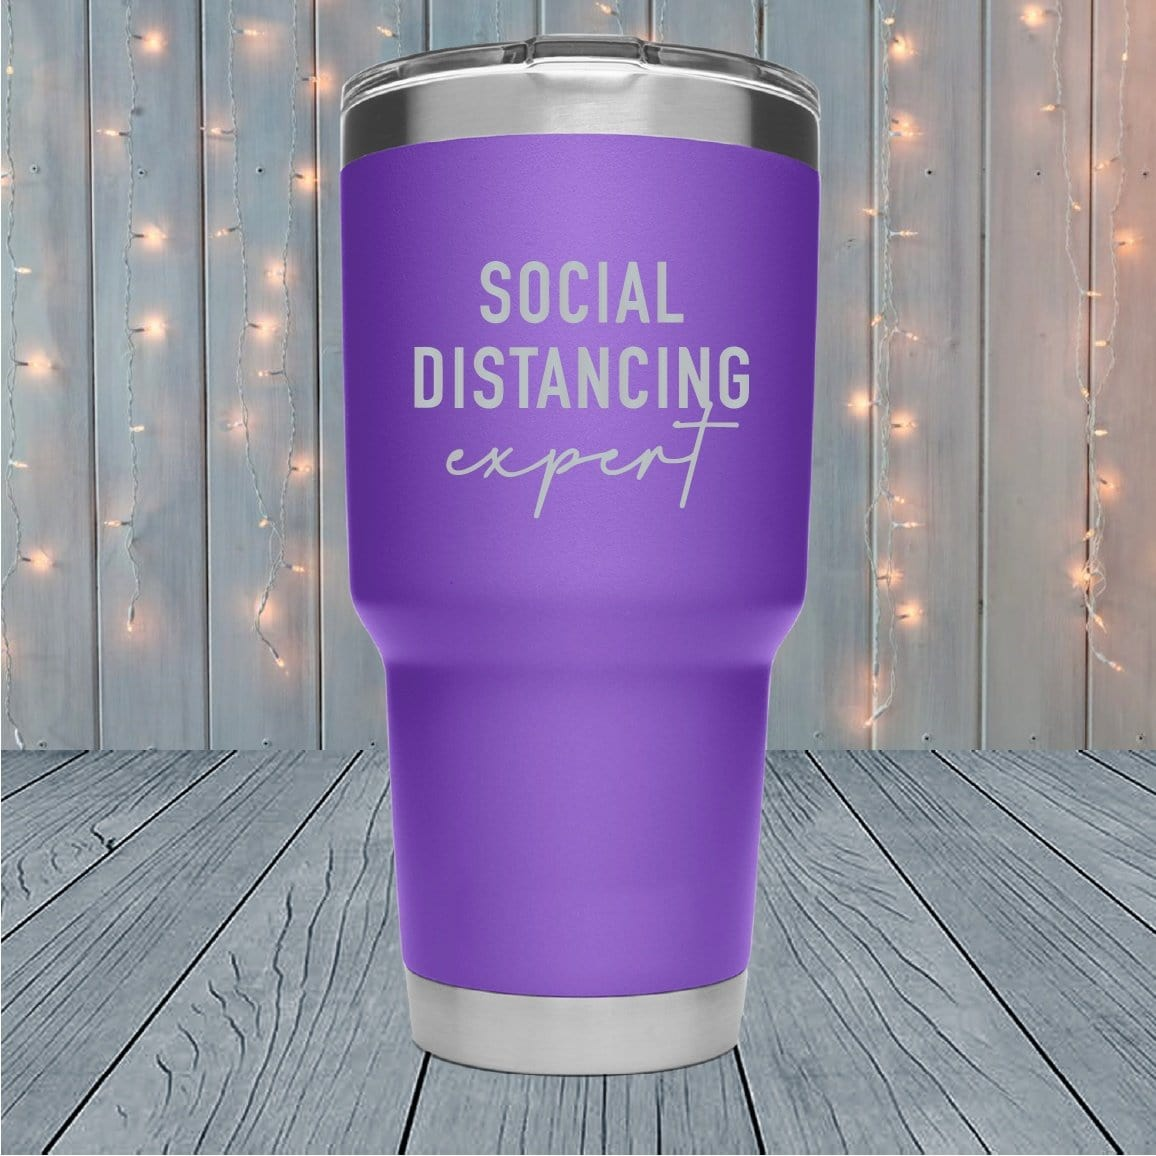 Social Distancing Expert Laser Engraved Tumblers